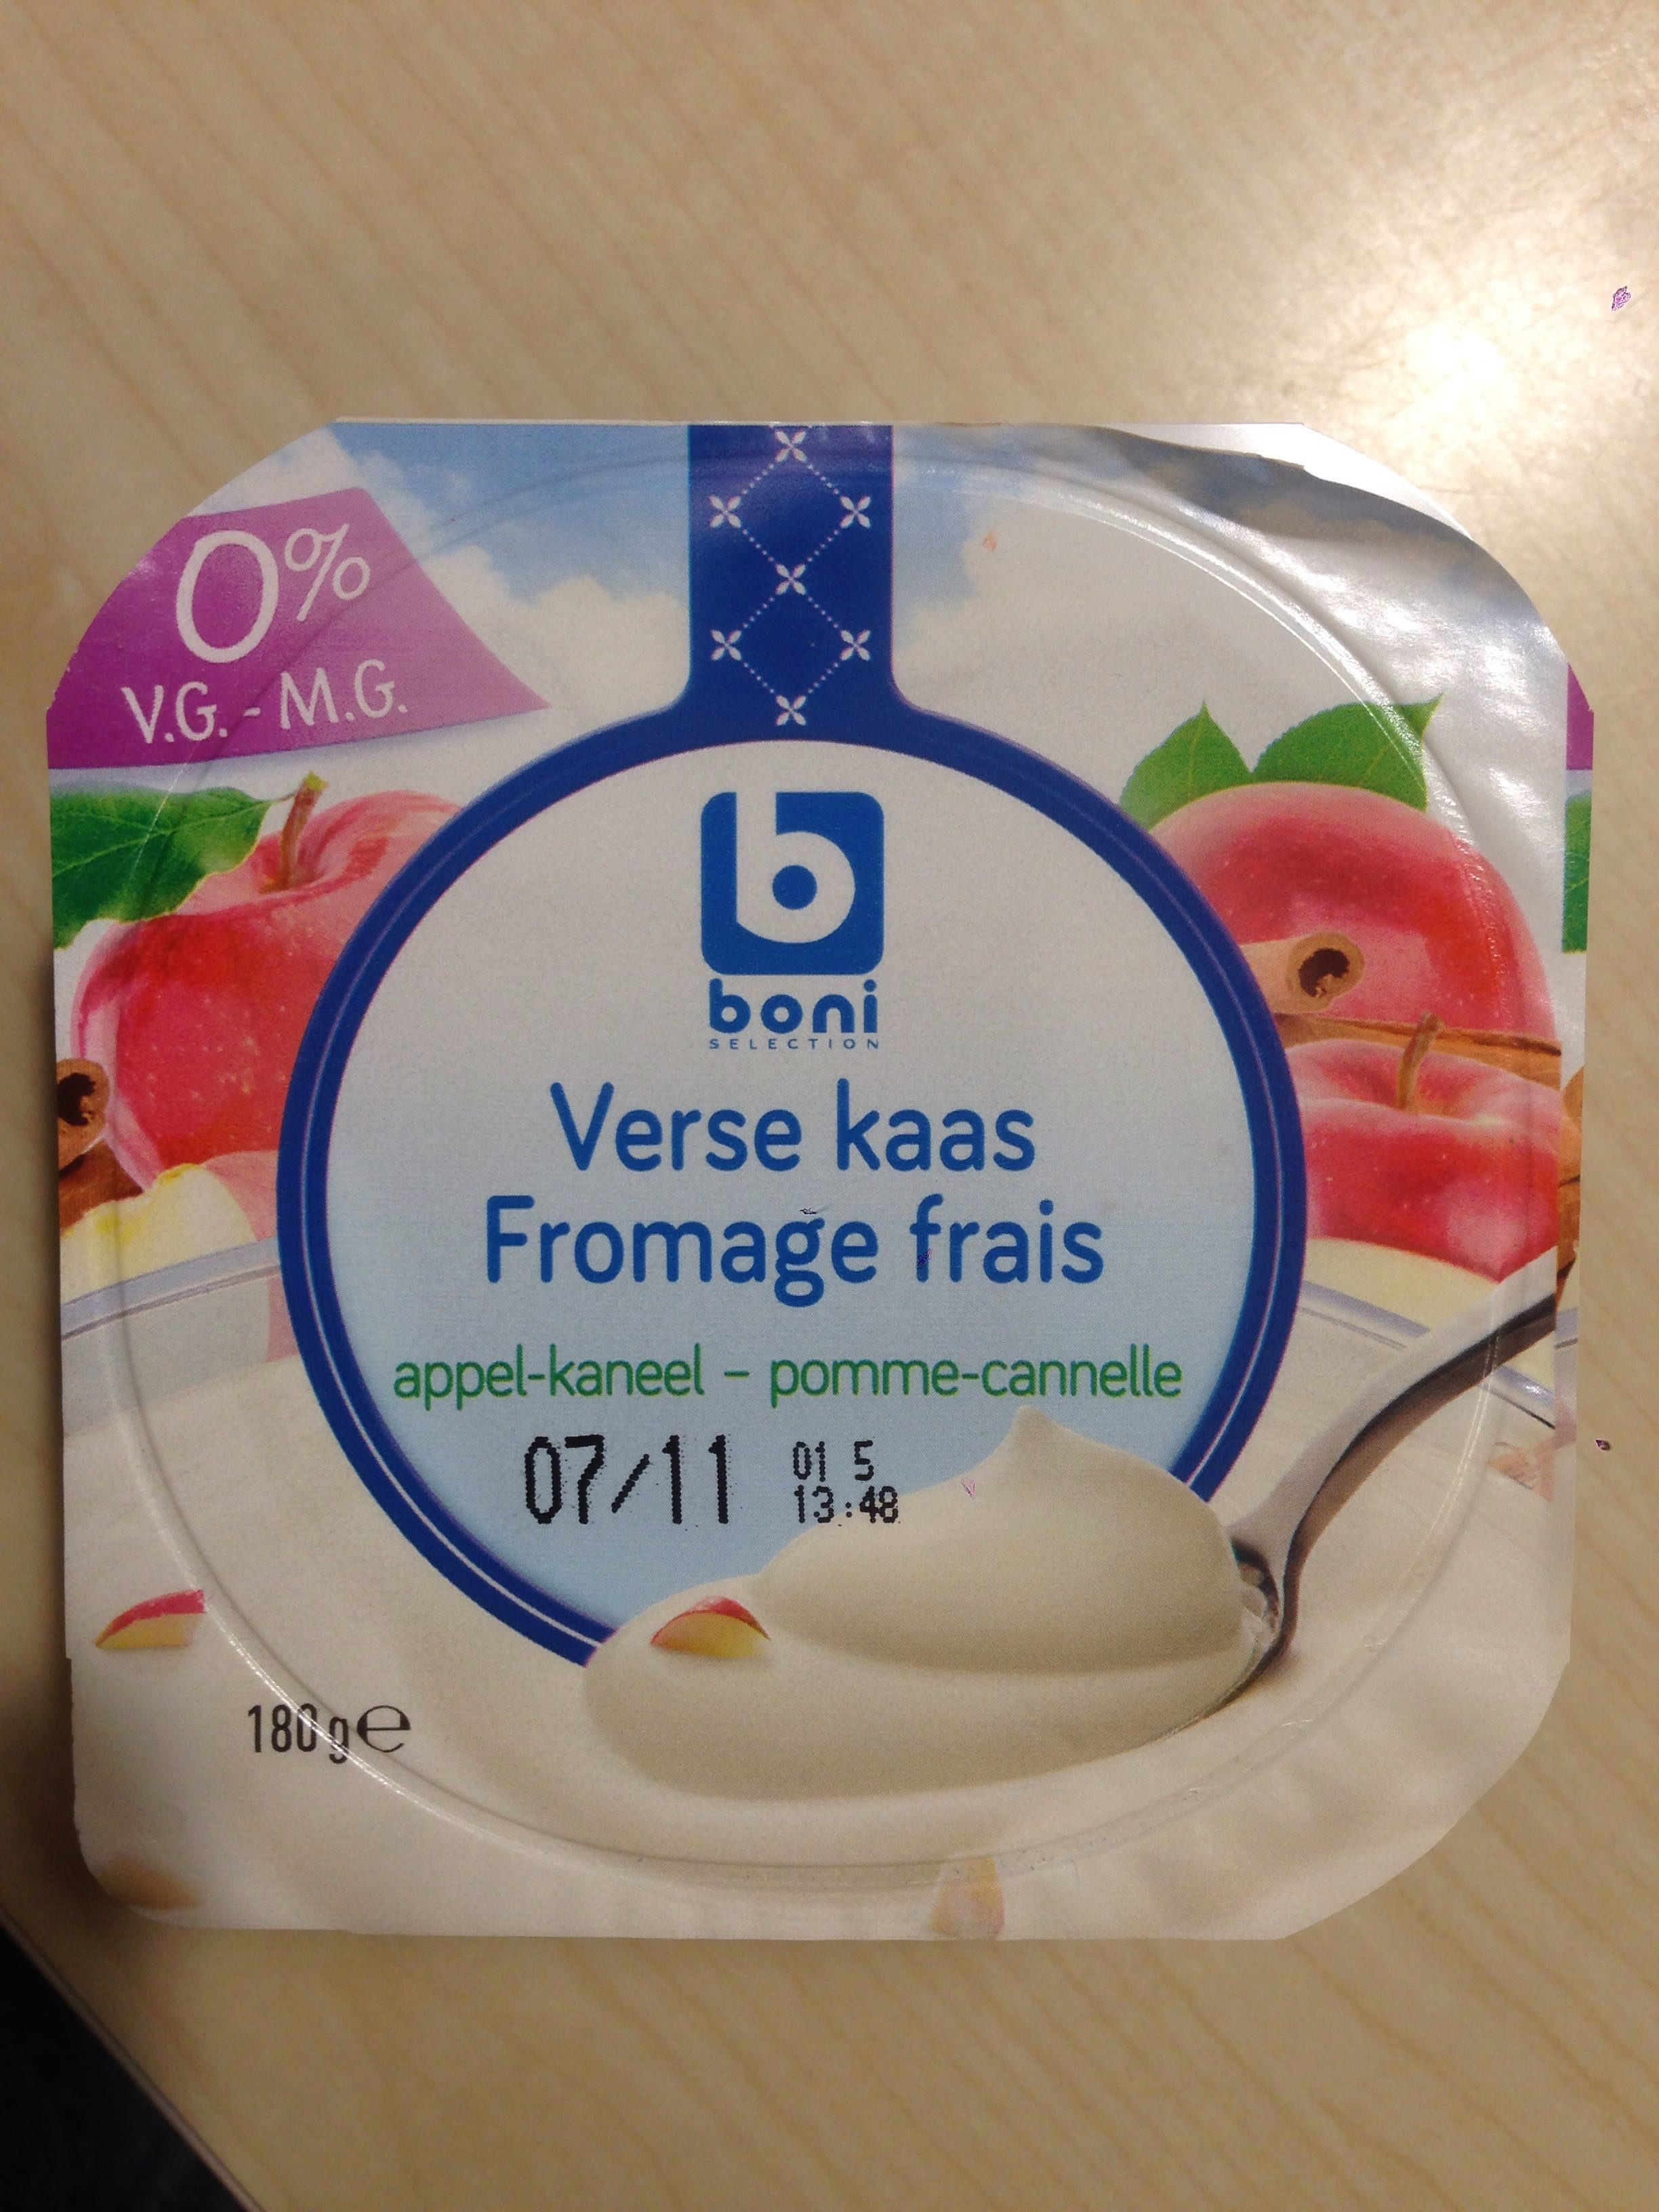 Fromage frais pomme cannelle - Product - fr